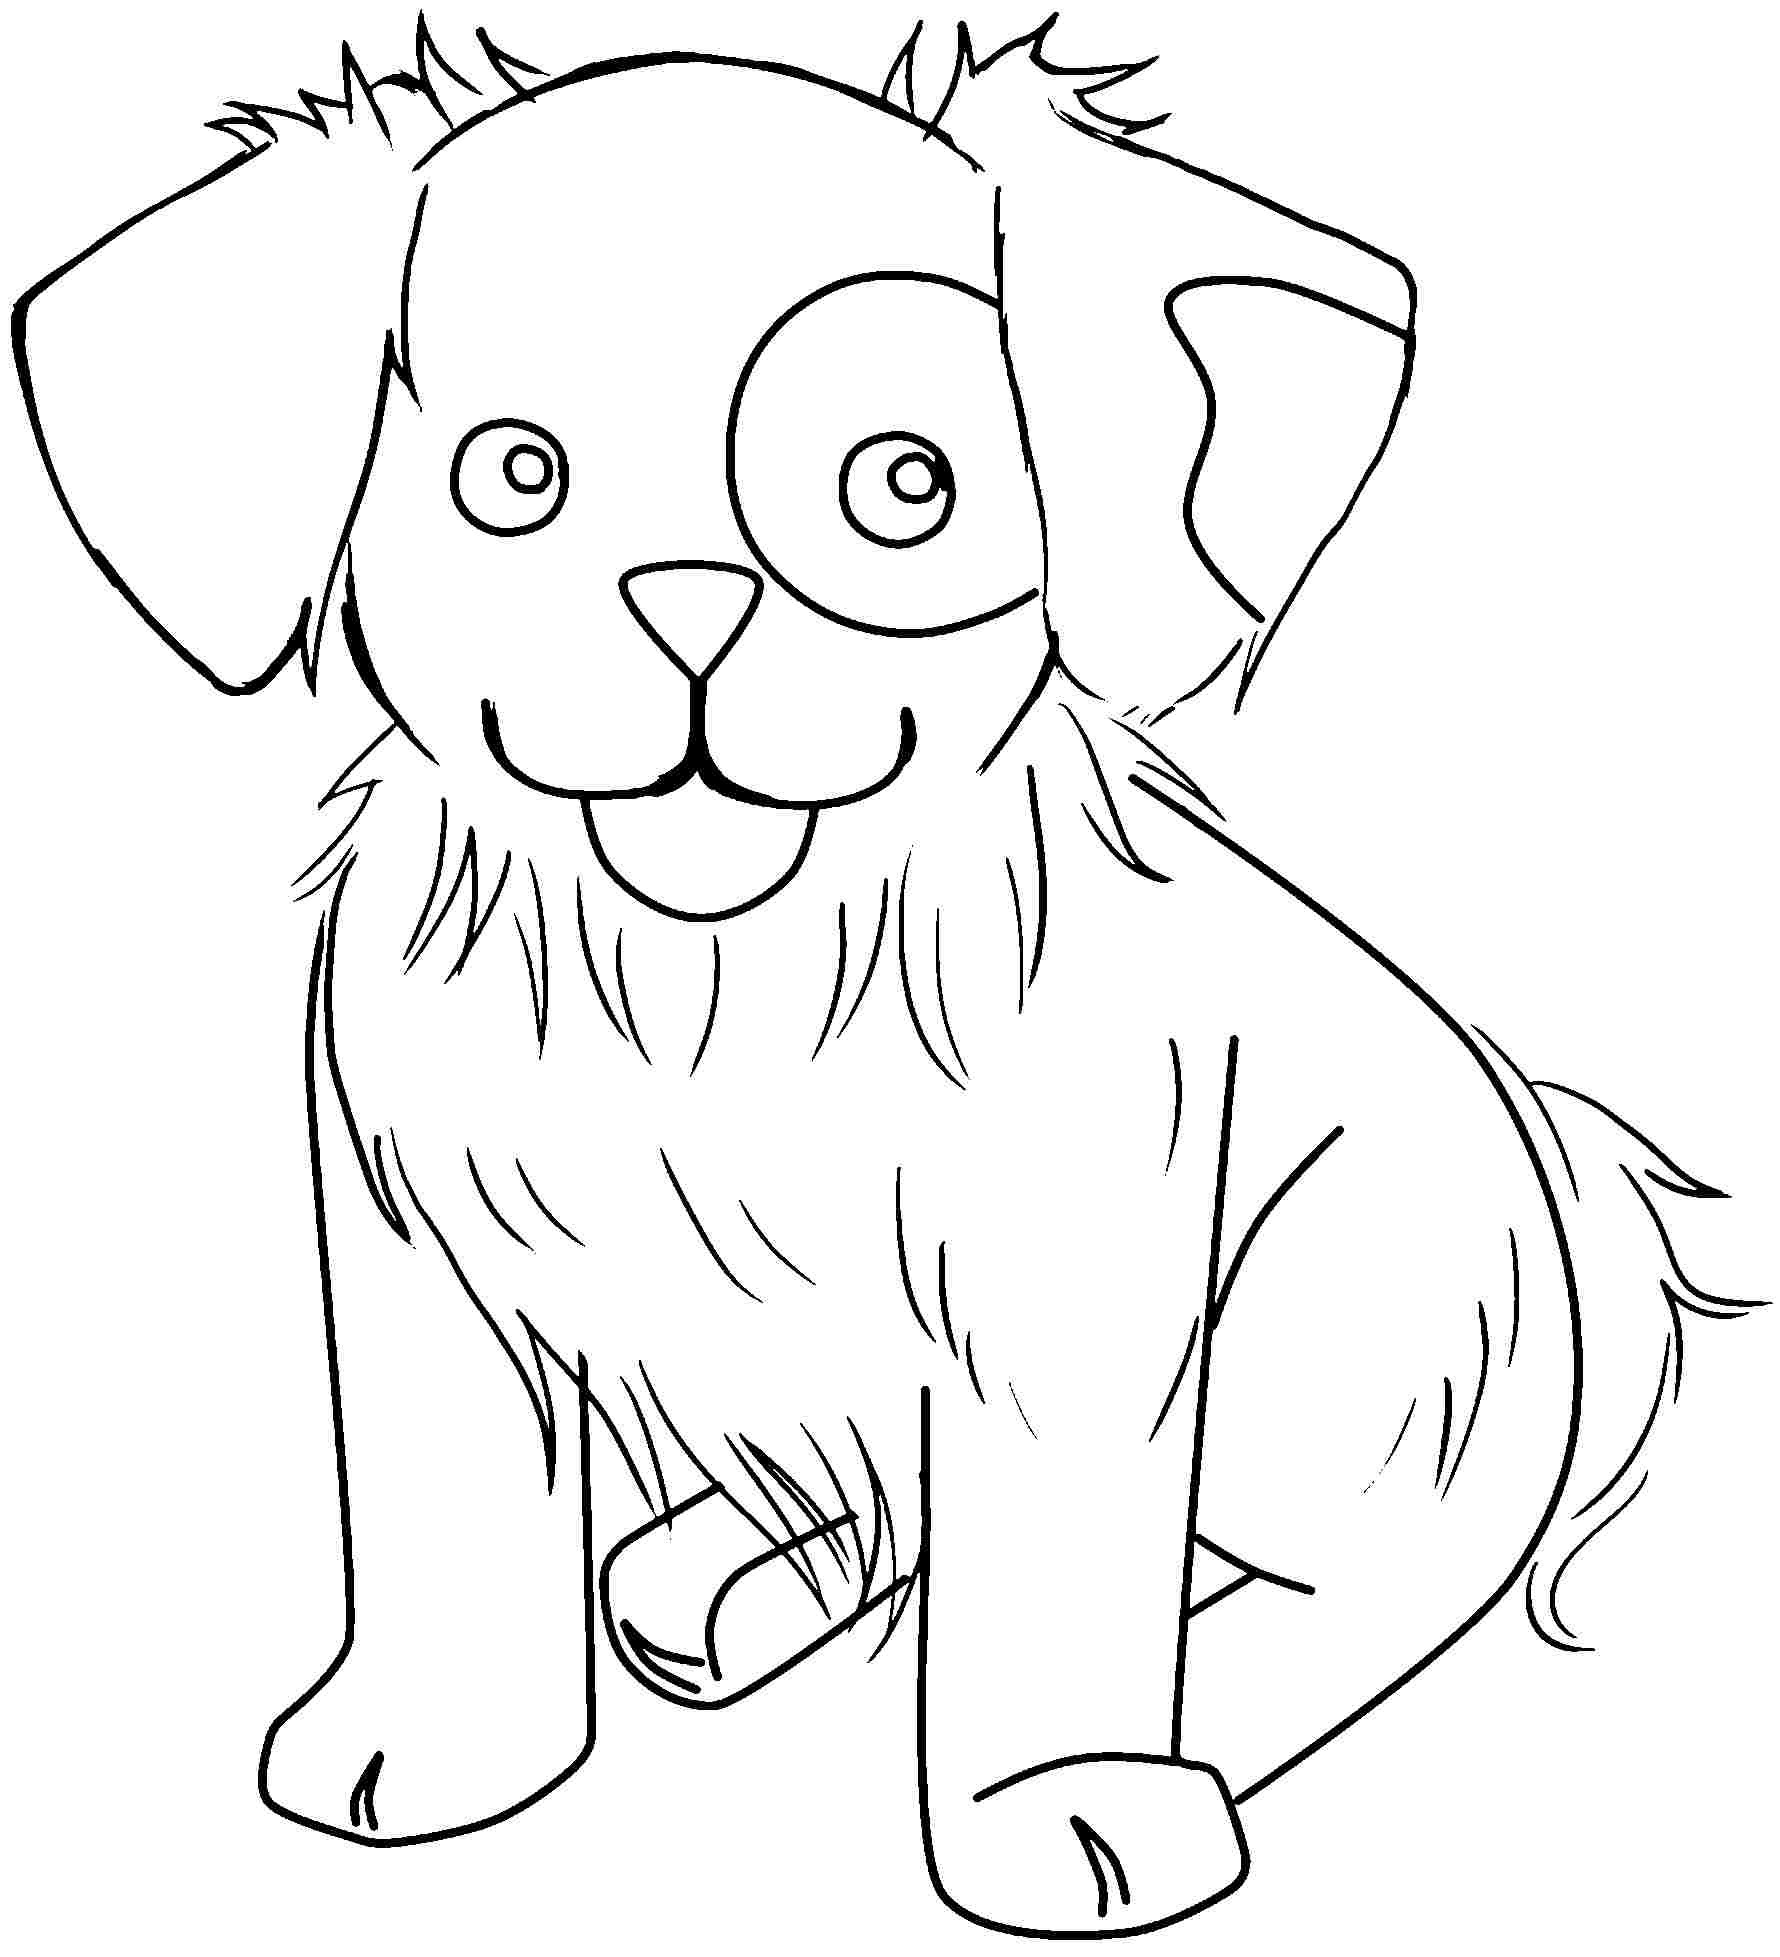 Best ideas about Free Printable Coloring Sheets Animal . Save or Pin Free Printable Cute Animal Coloring Pages Coloring Home Now.